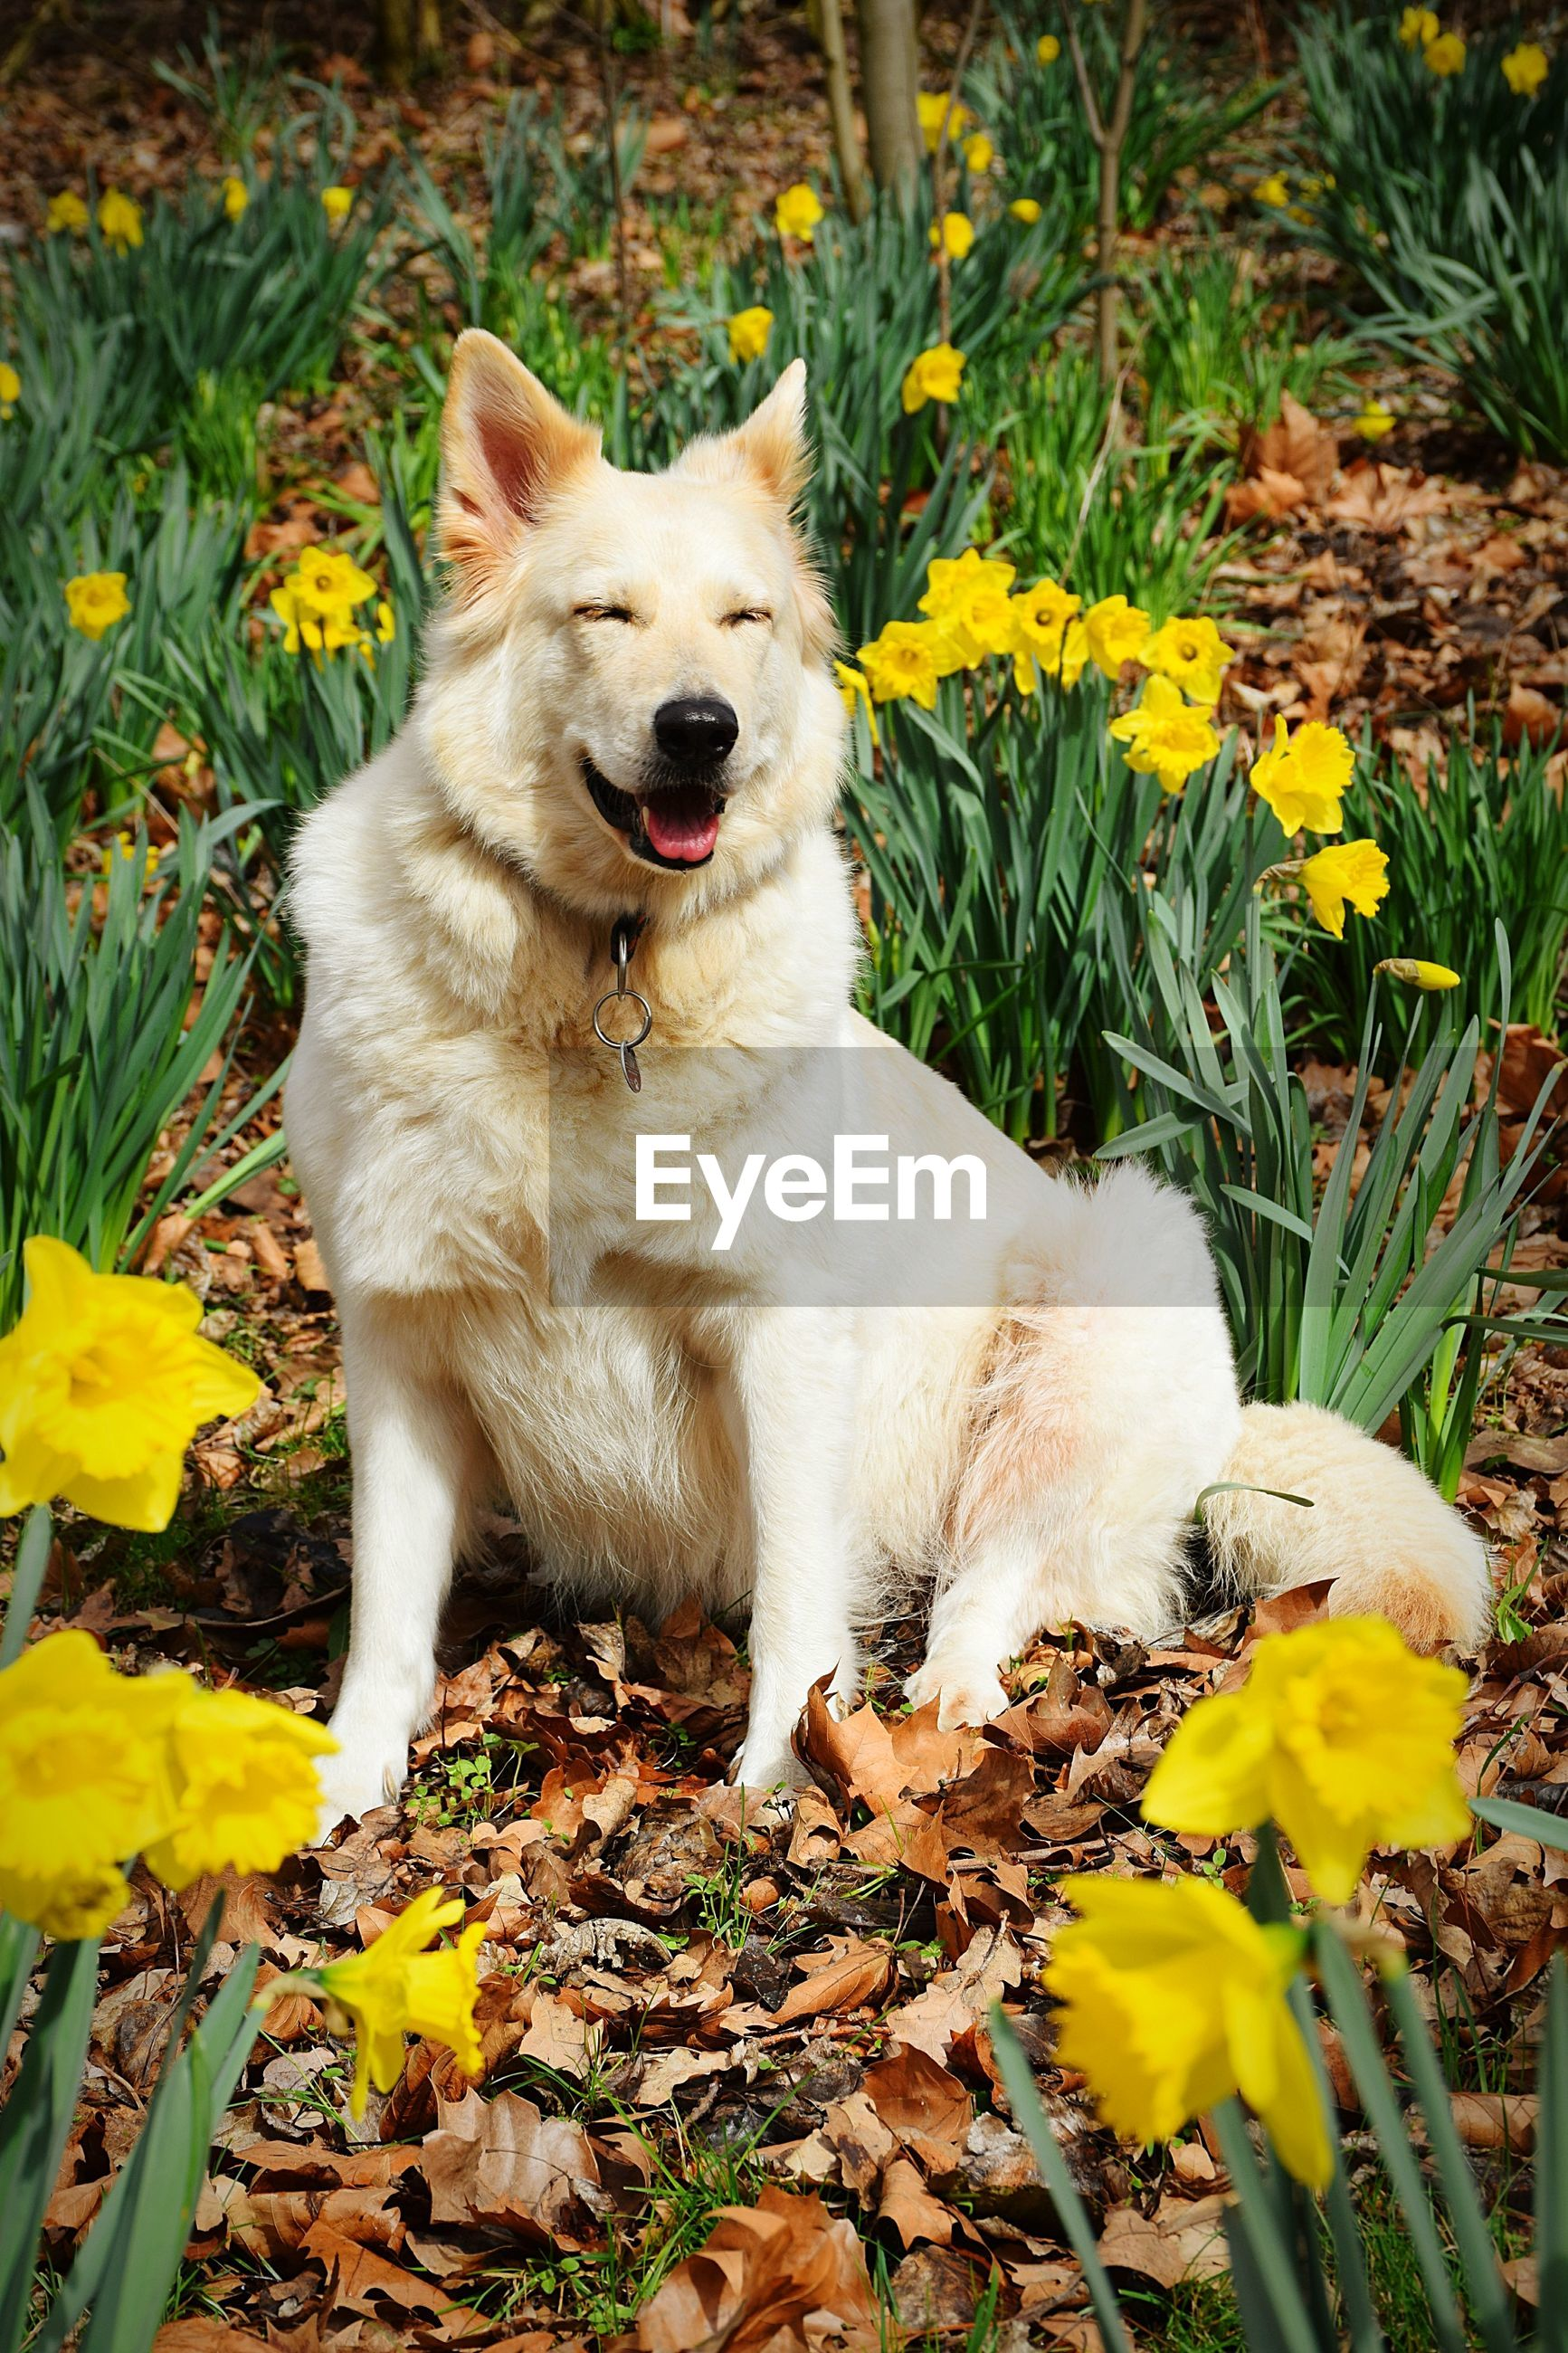 View of white dog on field